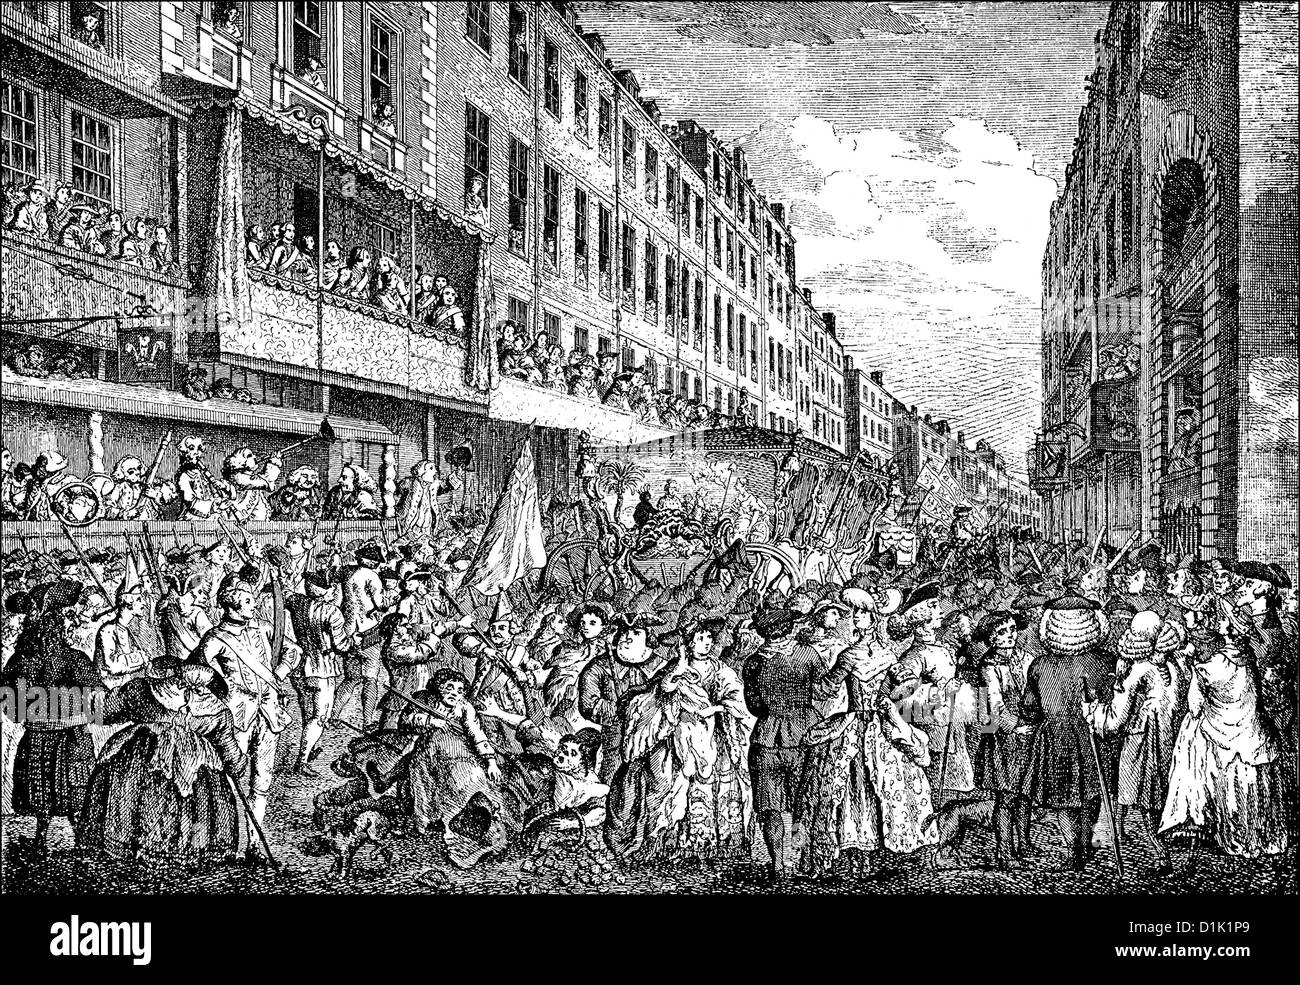 Parade, Lord Mayor's Show, 1780, the newly elected Lord Mayor of the City of London, England, 18th century, - Stock Image